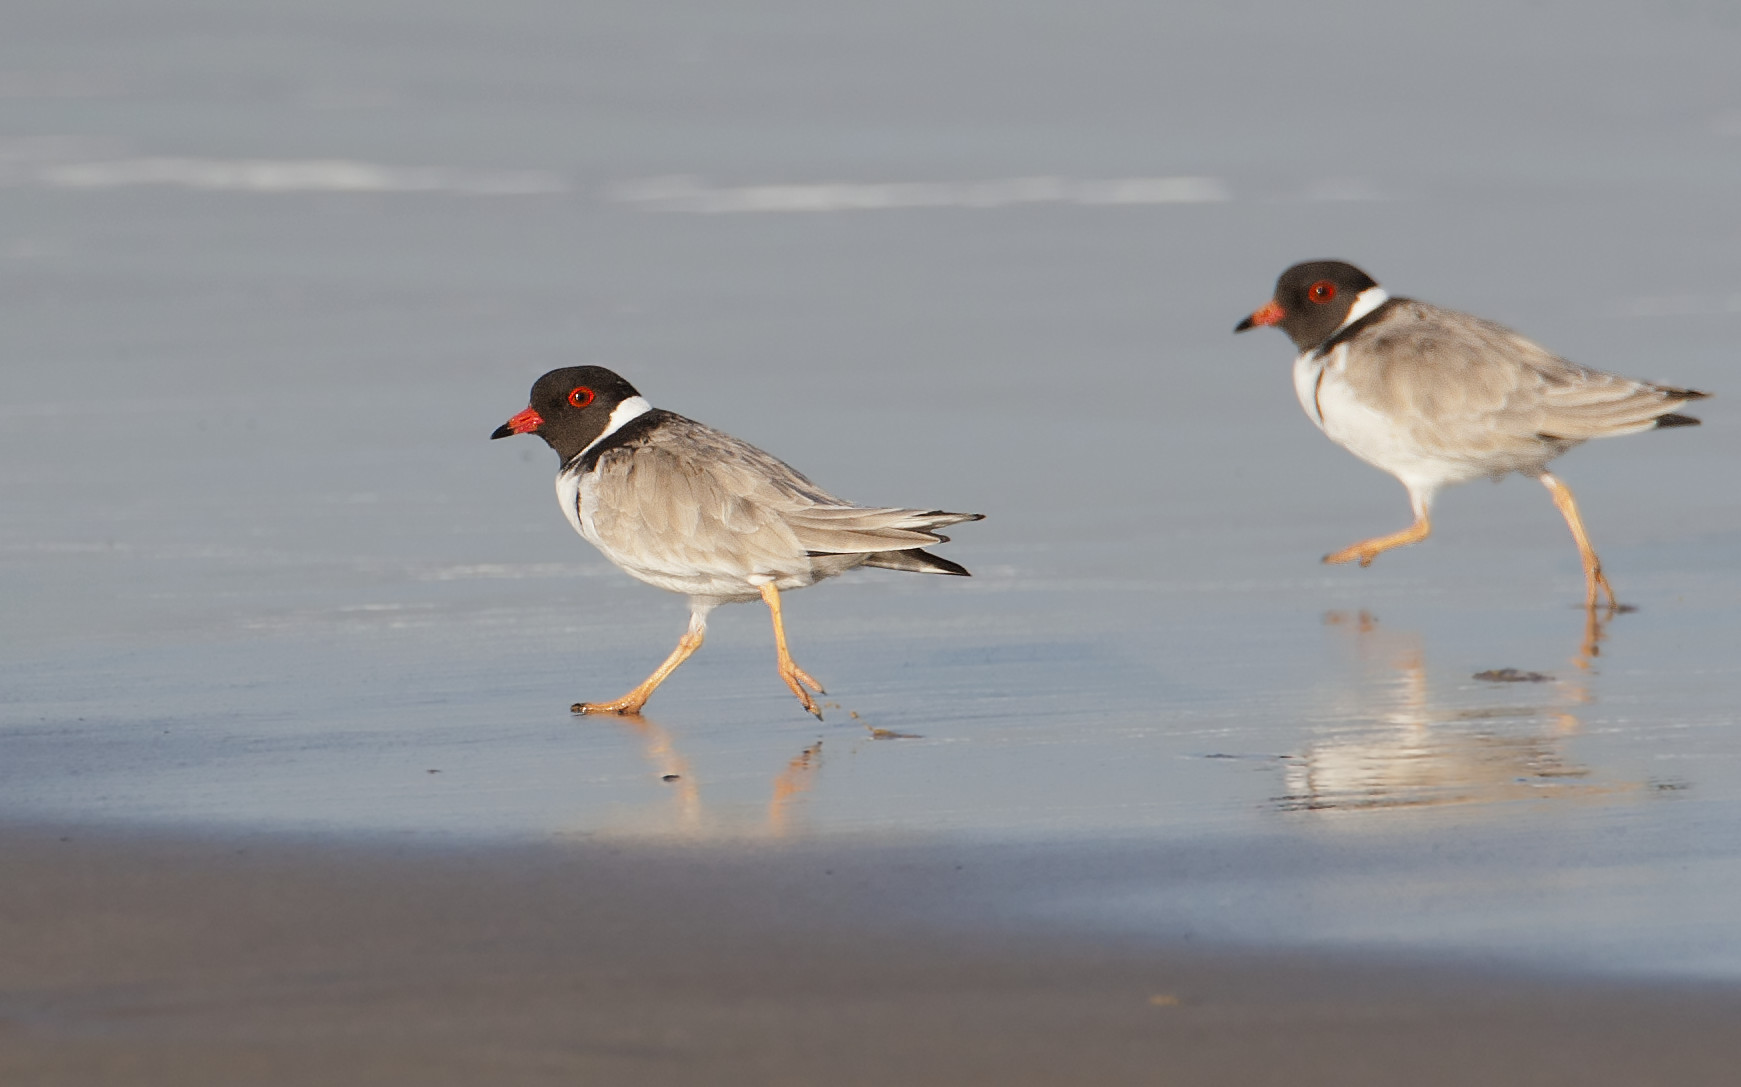 Hooded plover (Thinornis rubricollis), walking on shore at low tide, Tasmania